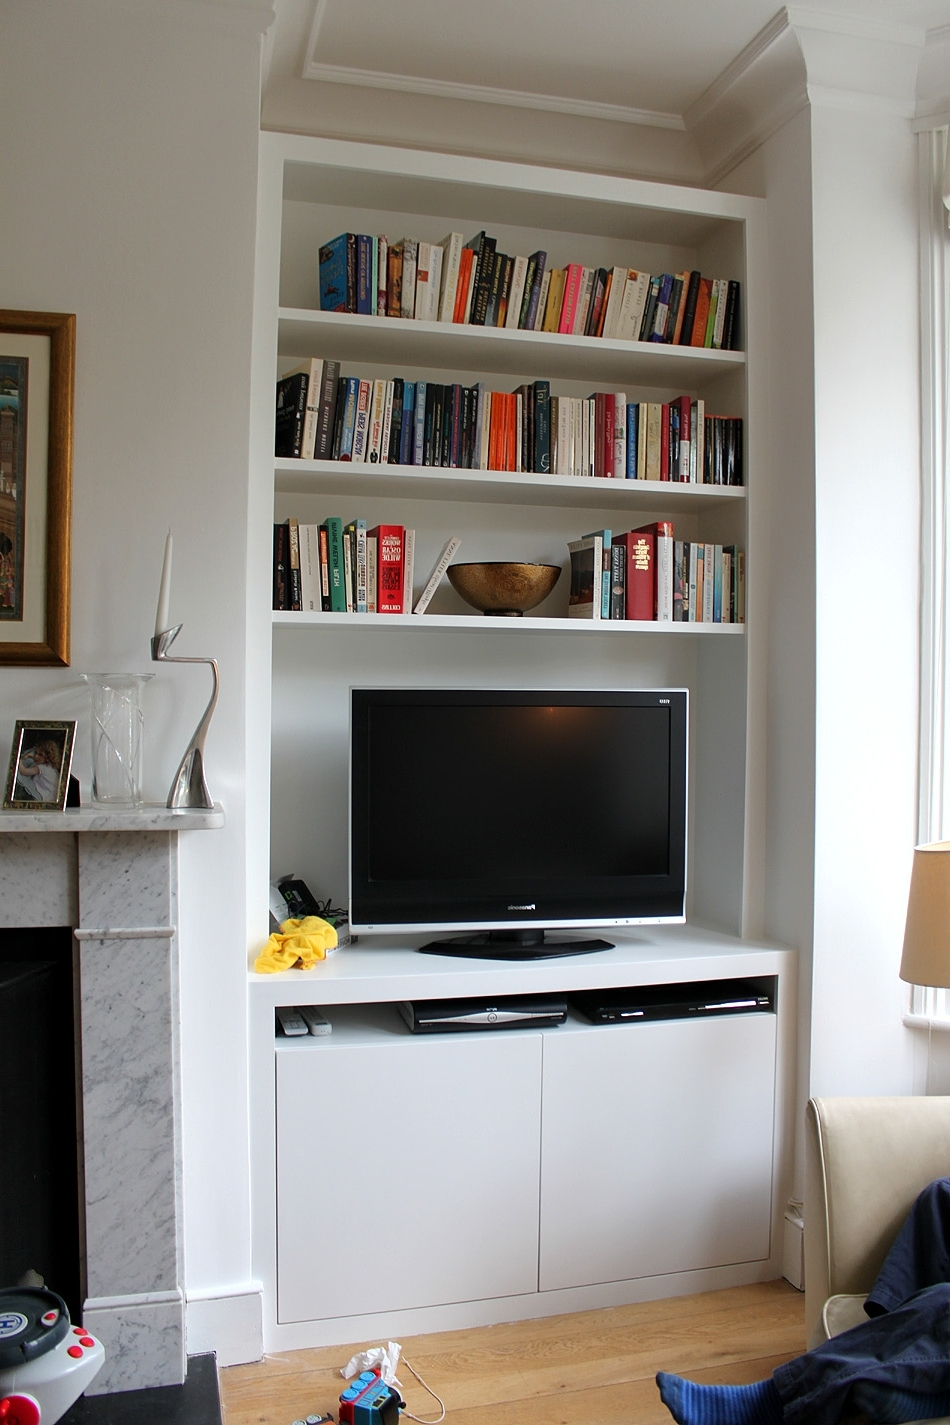 Fitted Wardrobes, Bookcases, Shelving, Floating Shelves, London Pertaining To Most Current Bespoke Tv Cabinets (View 13 of 15)